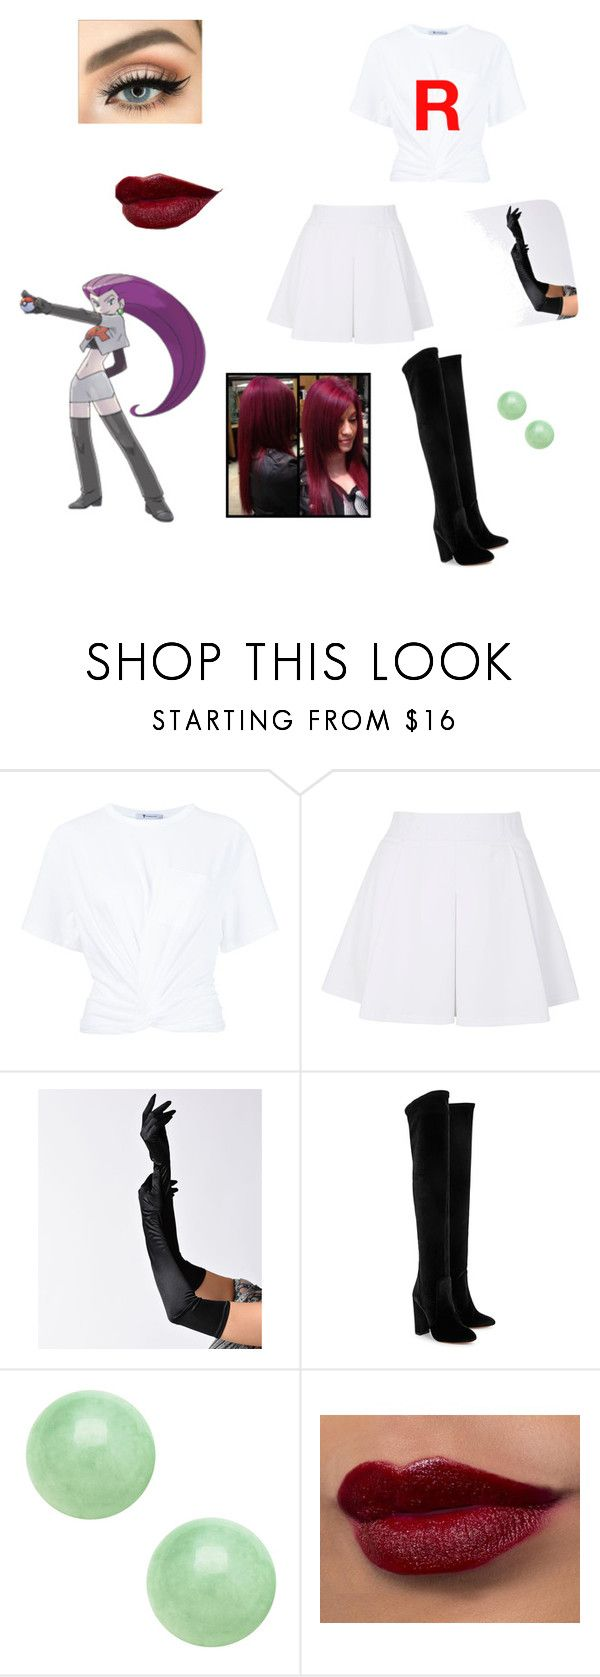 """""""Jessie team rocket"""" by moodydee ❤ liked on Polyvore featuring T By Alexander Wang, Topshop and Aquazzura"""